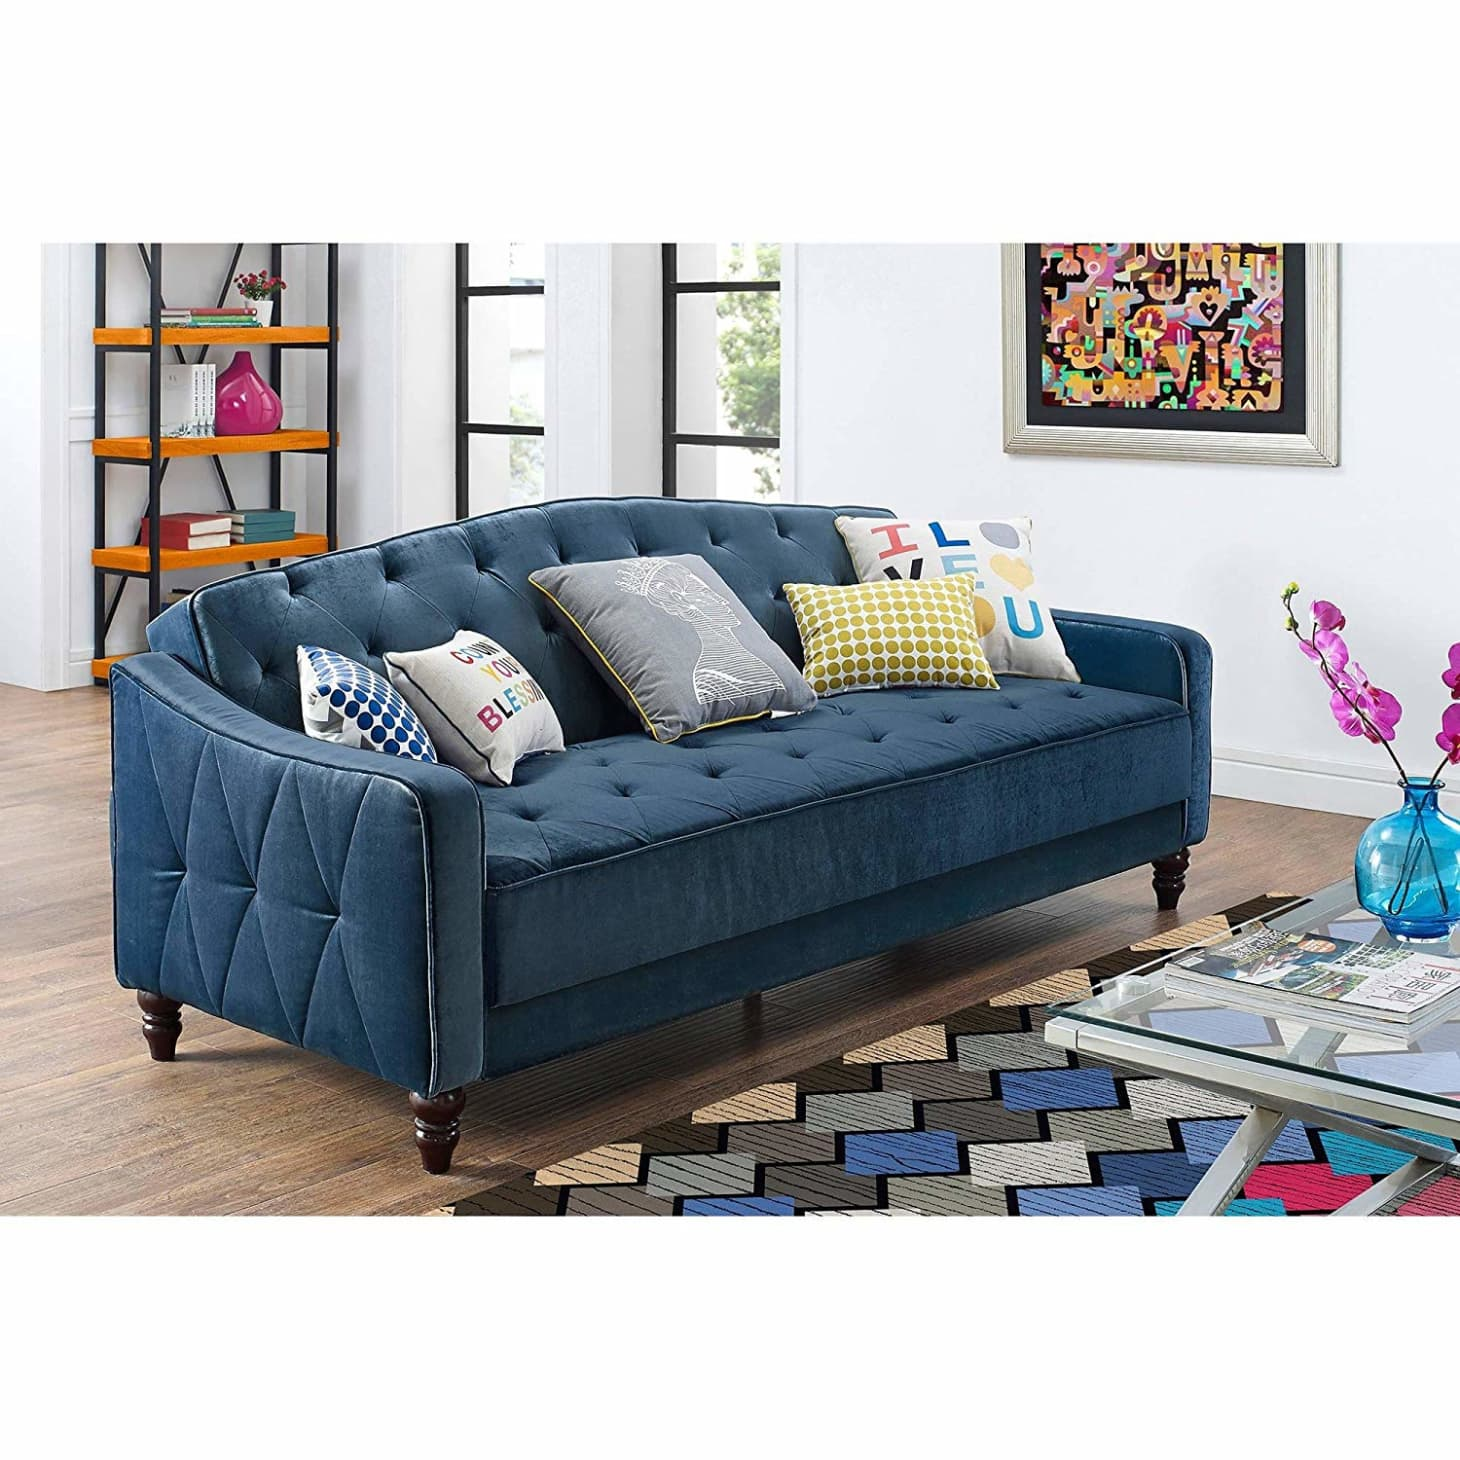 Best Sofas Under $500 - Cheap Comfortable Couches | Apartment Therapy